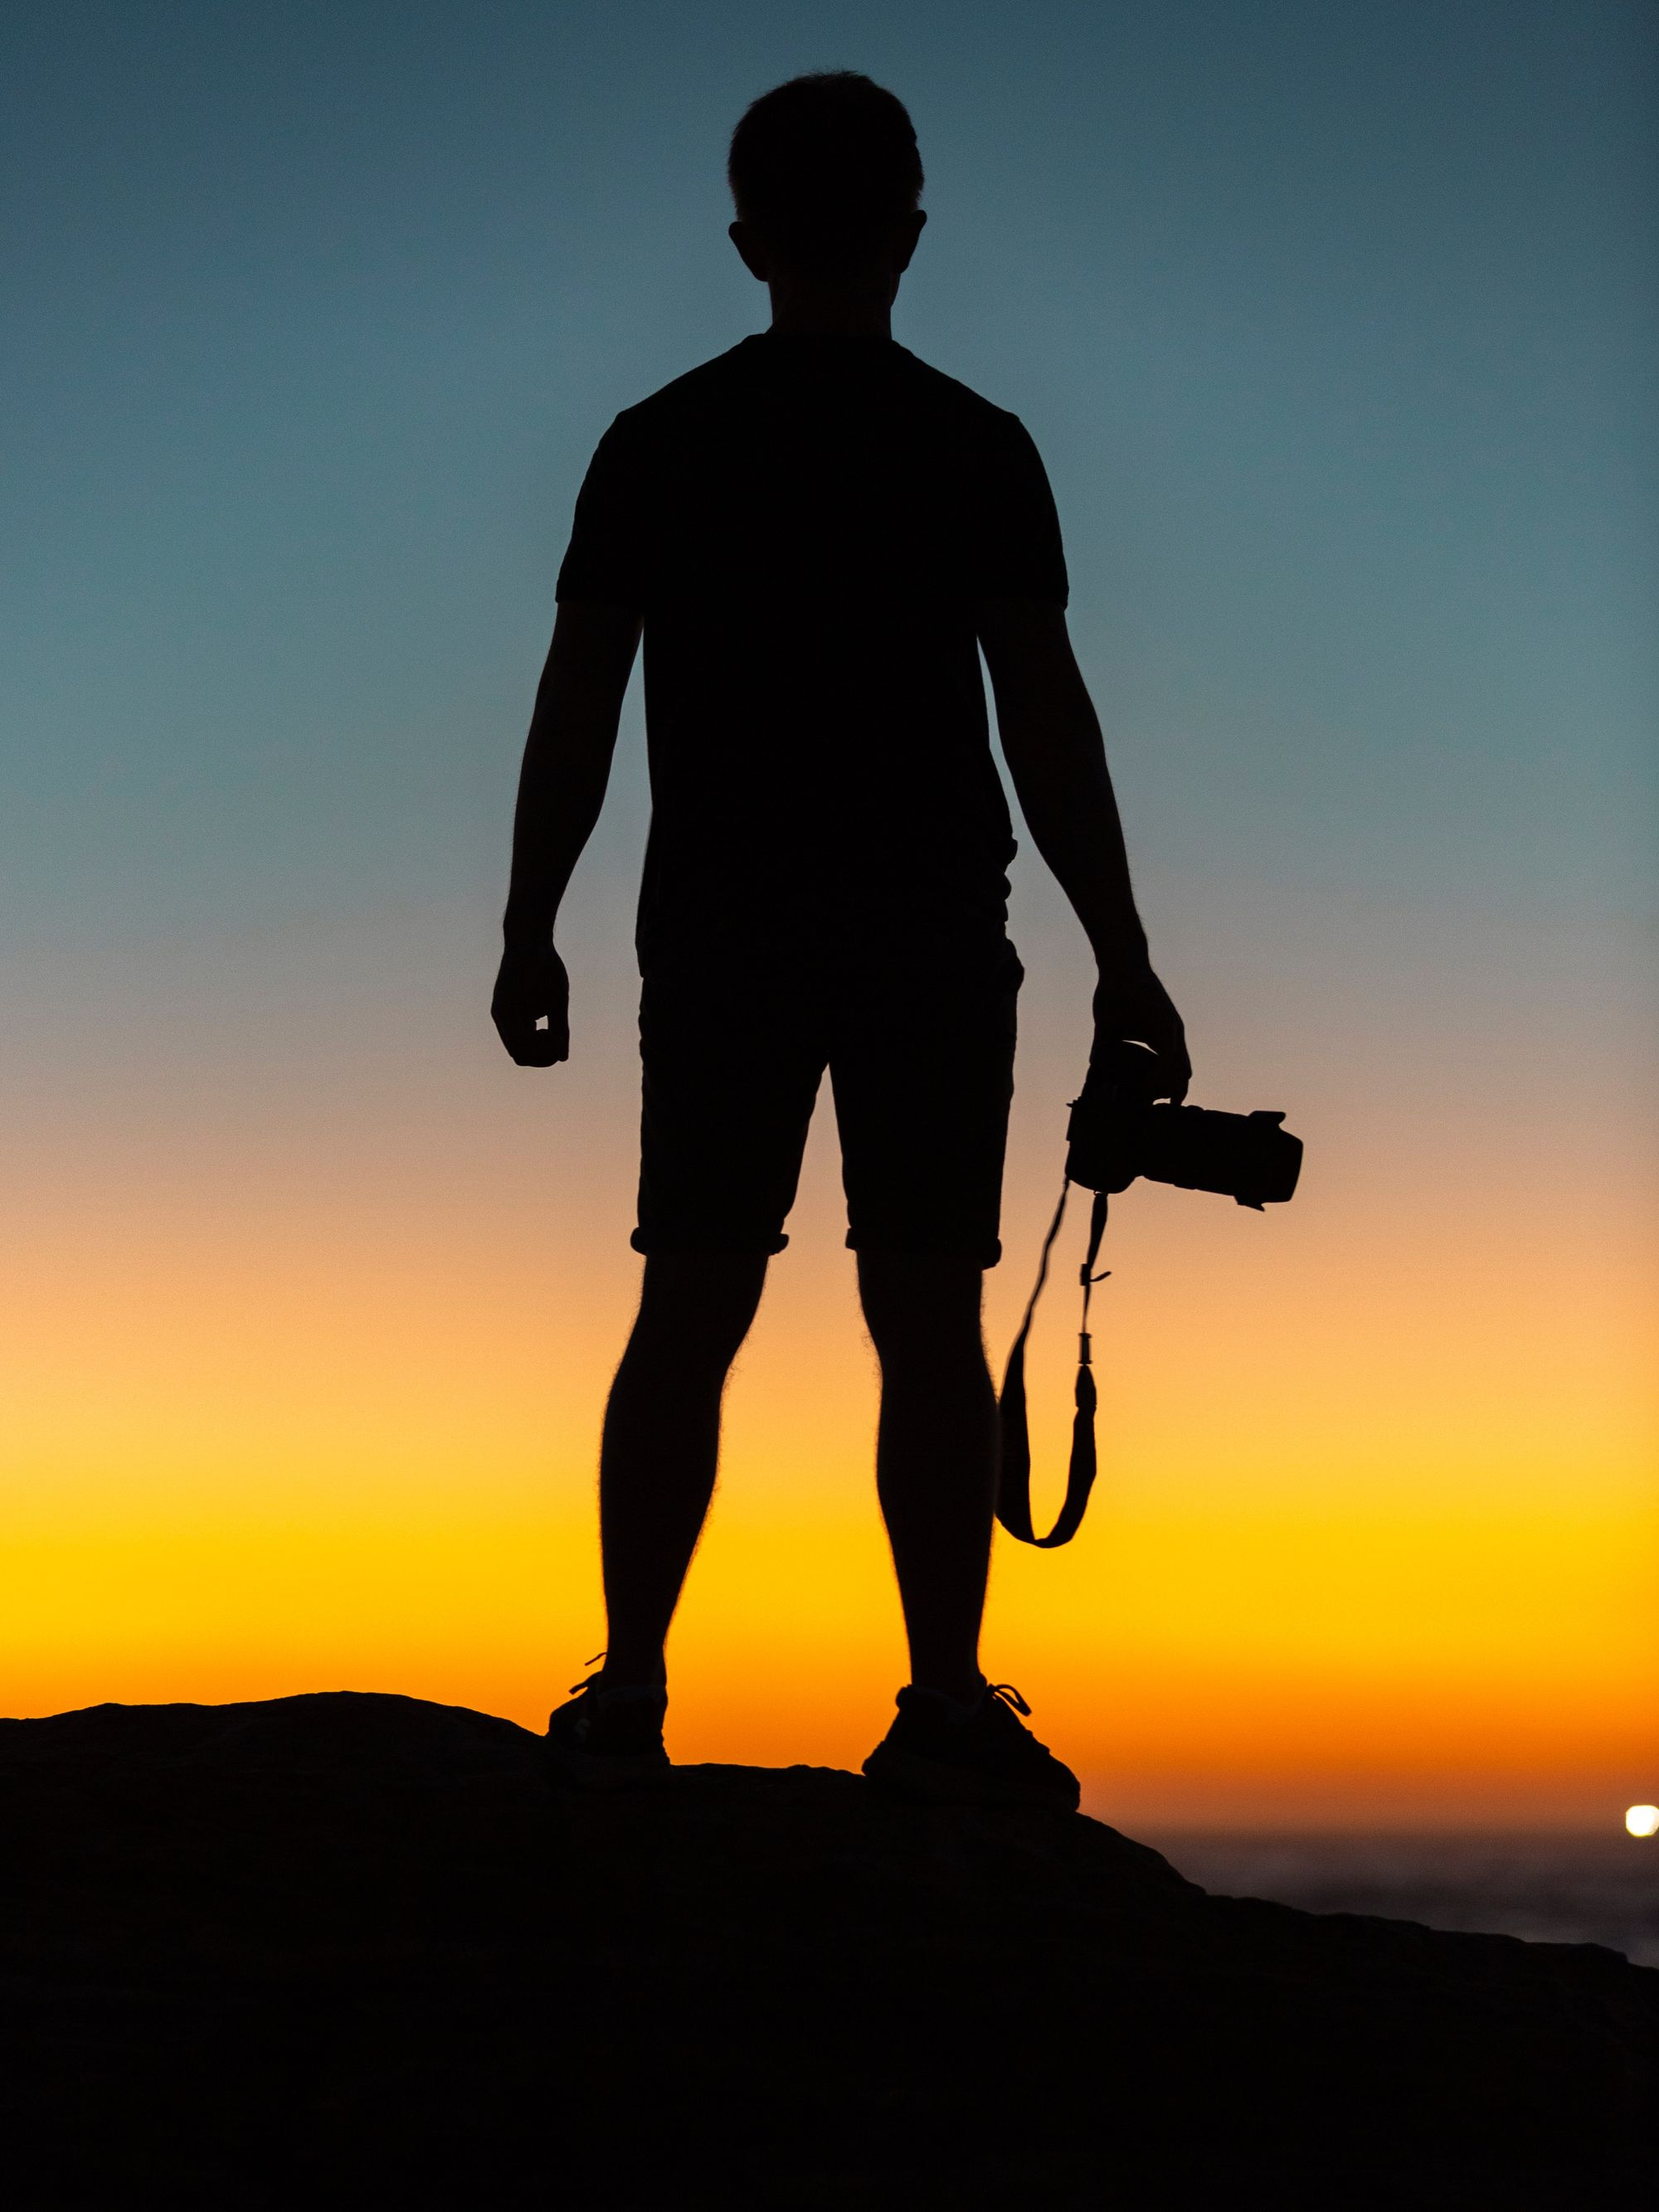 Evolve your skills as a new photographer